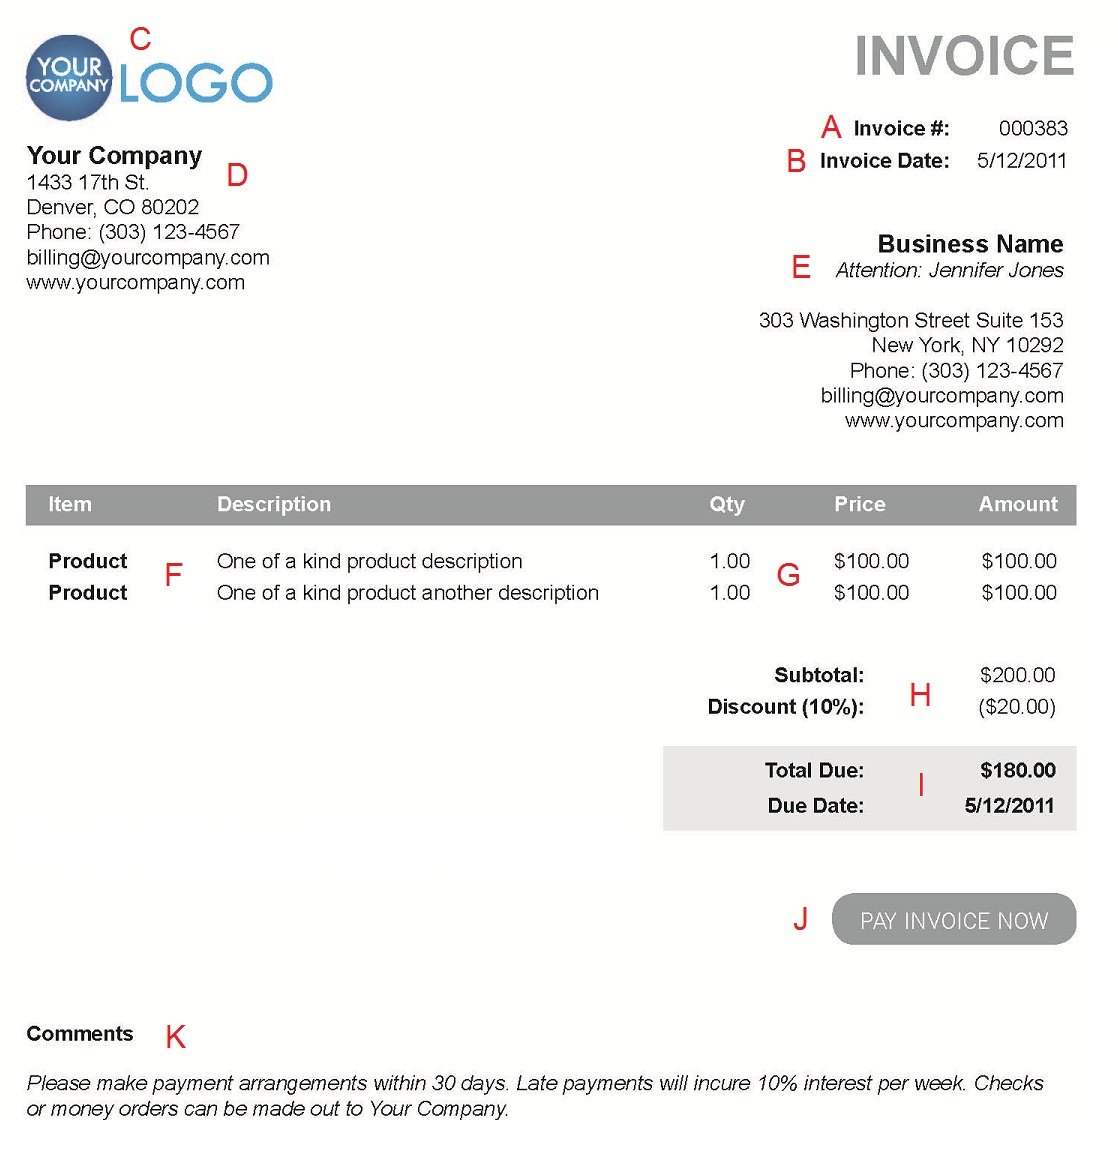 Maidofhonortoastus  Wonderful The  Different Sections Of An Electronic Payment Invoice With Goodlooking A  With Delightful Sample Handyman Invoice Also How To Write A Personal Invoice In Addition Project Management And Invoicing Software And How To Make A Commercial Invoice As Well As What Should An Invoice Contain Additionally Online Business Suite Invoicing Services From Paysimplecom With Maidofhonortoastus  Goodlooking The  Different Sections Of An Electronic Payment Invoice With Delightful A  And Wonderful Sample Handyman Invoice Also How To Write A Personal Invoice In Addition Project Management And Invoicing Software From Paysimplecom